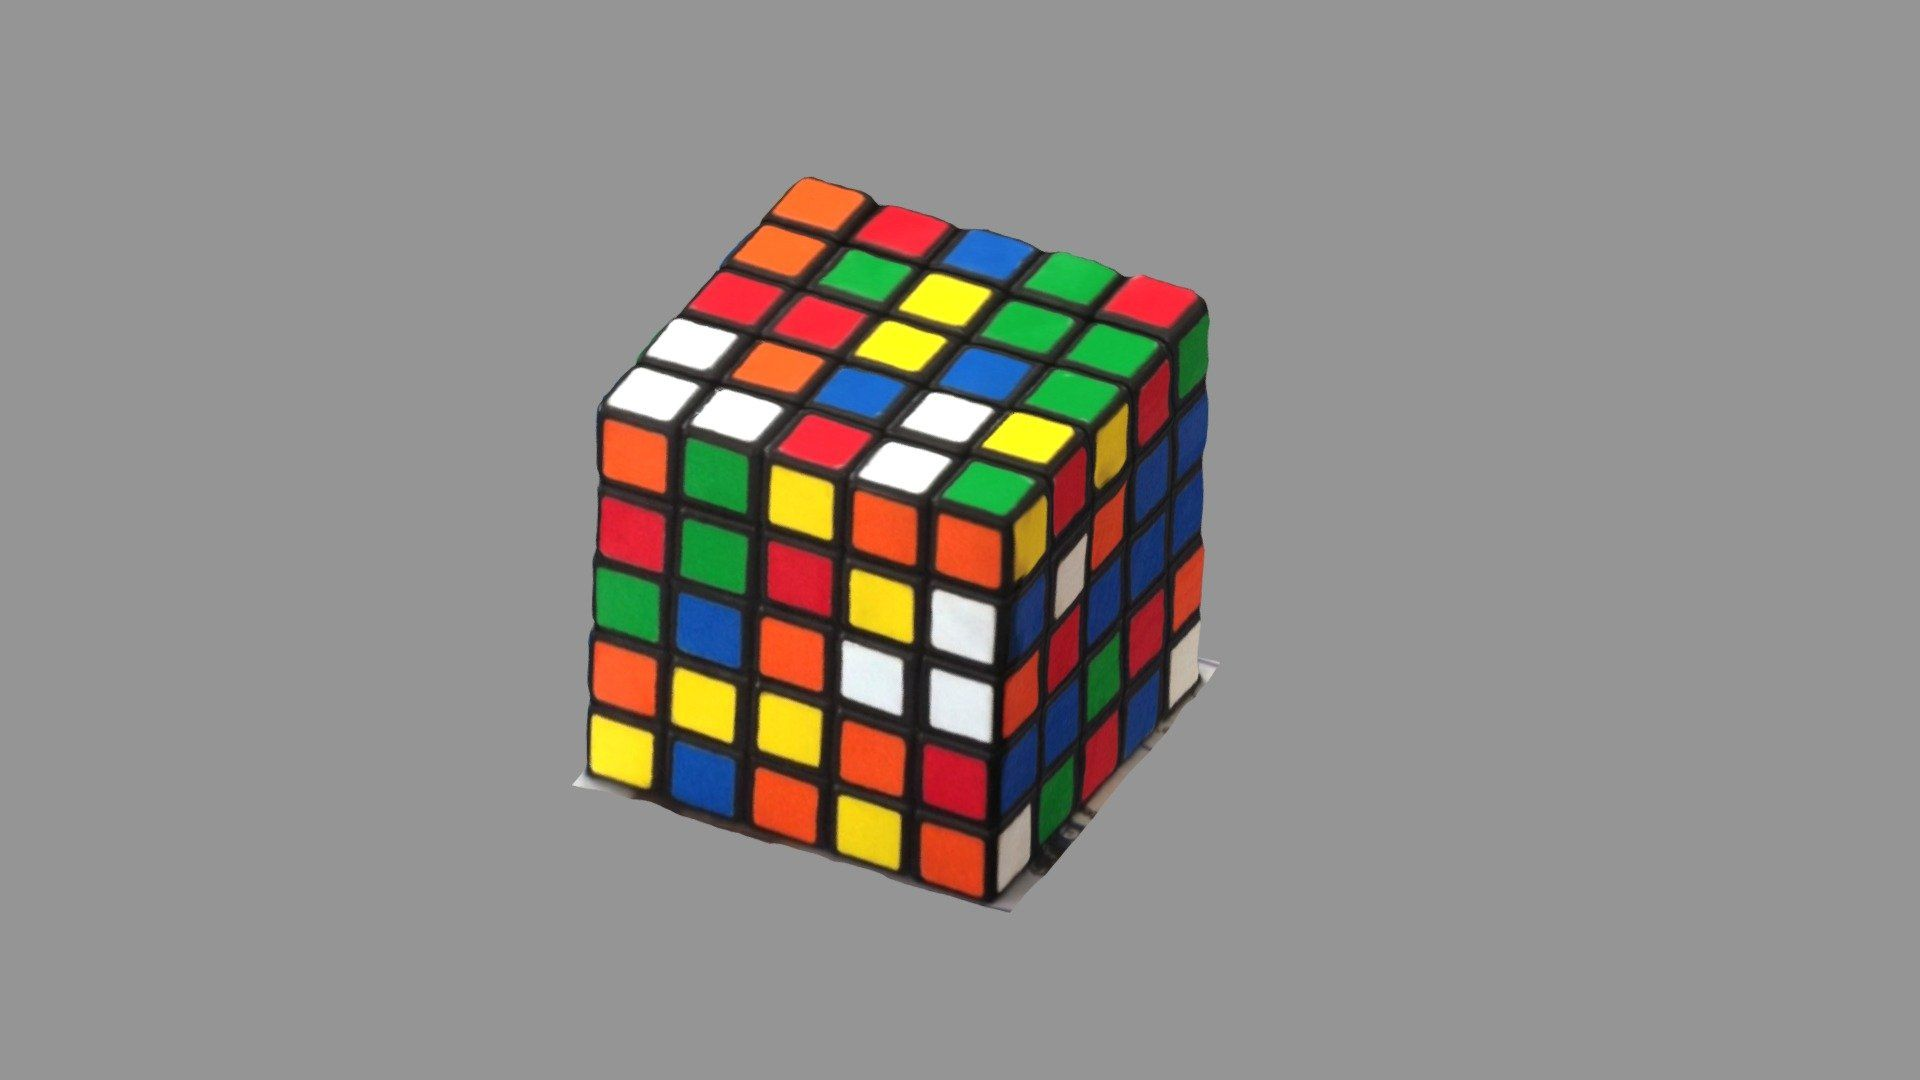 Rubiks Cube free download wallpaper